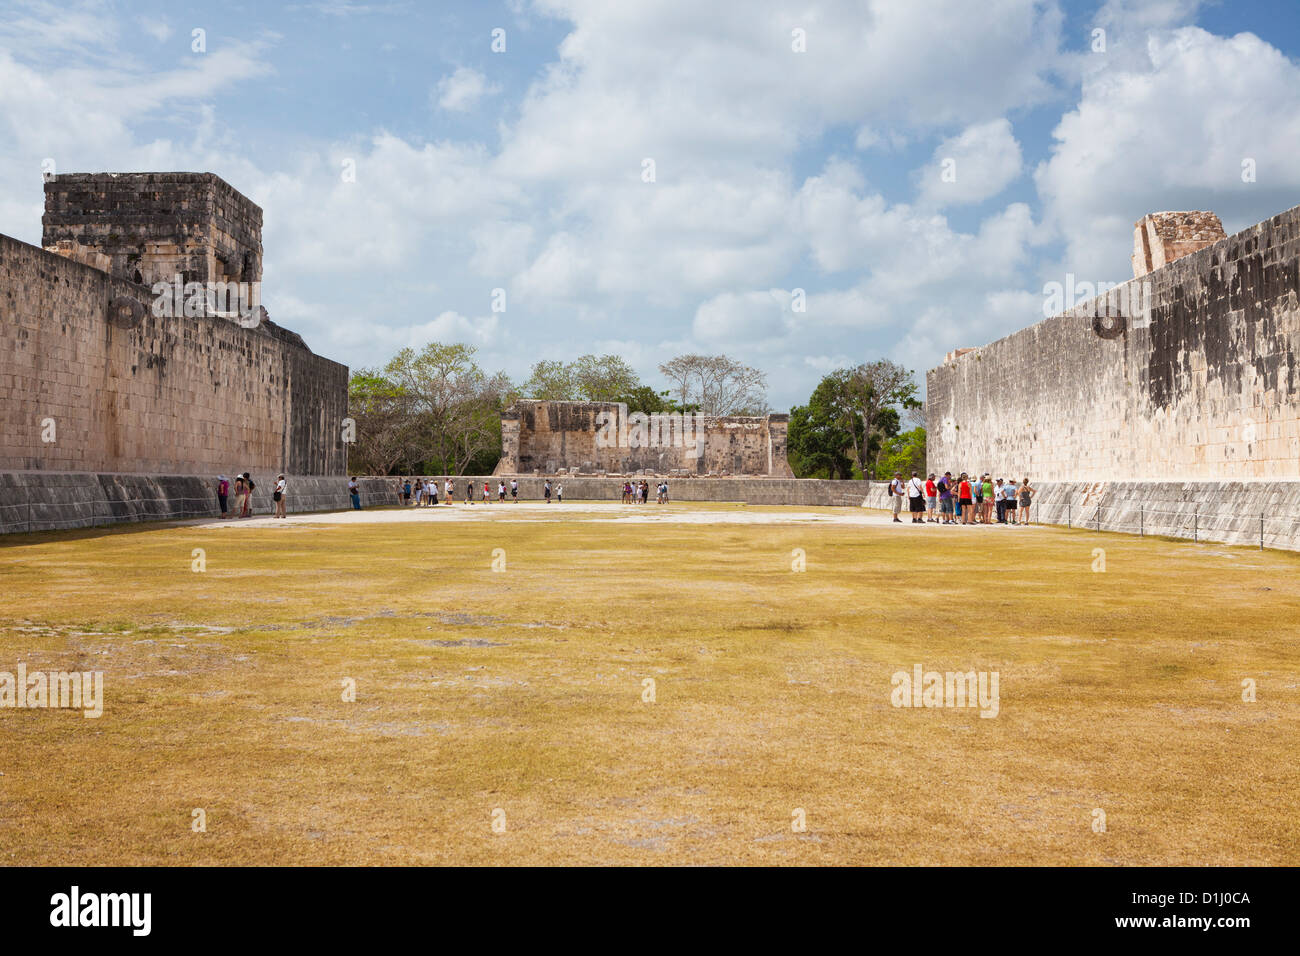 Great Ball Court, Chichen Itza, Yucatan Peninsula, Quintana Roo, Mexico - Stock Image